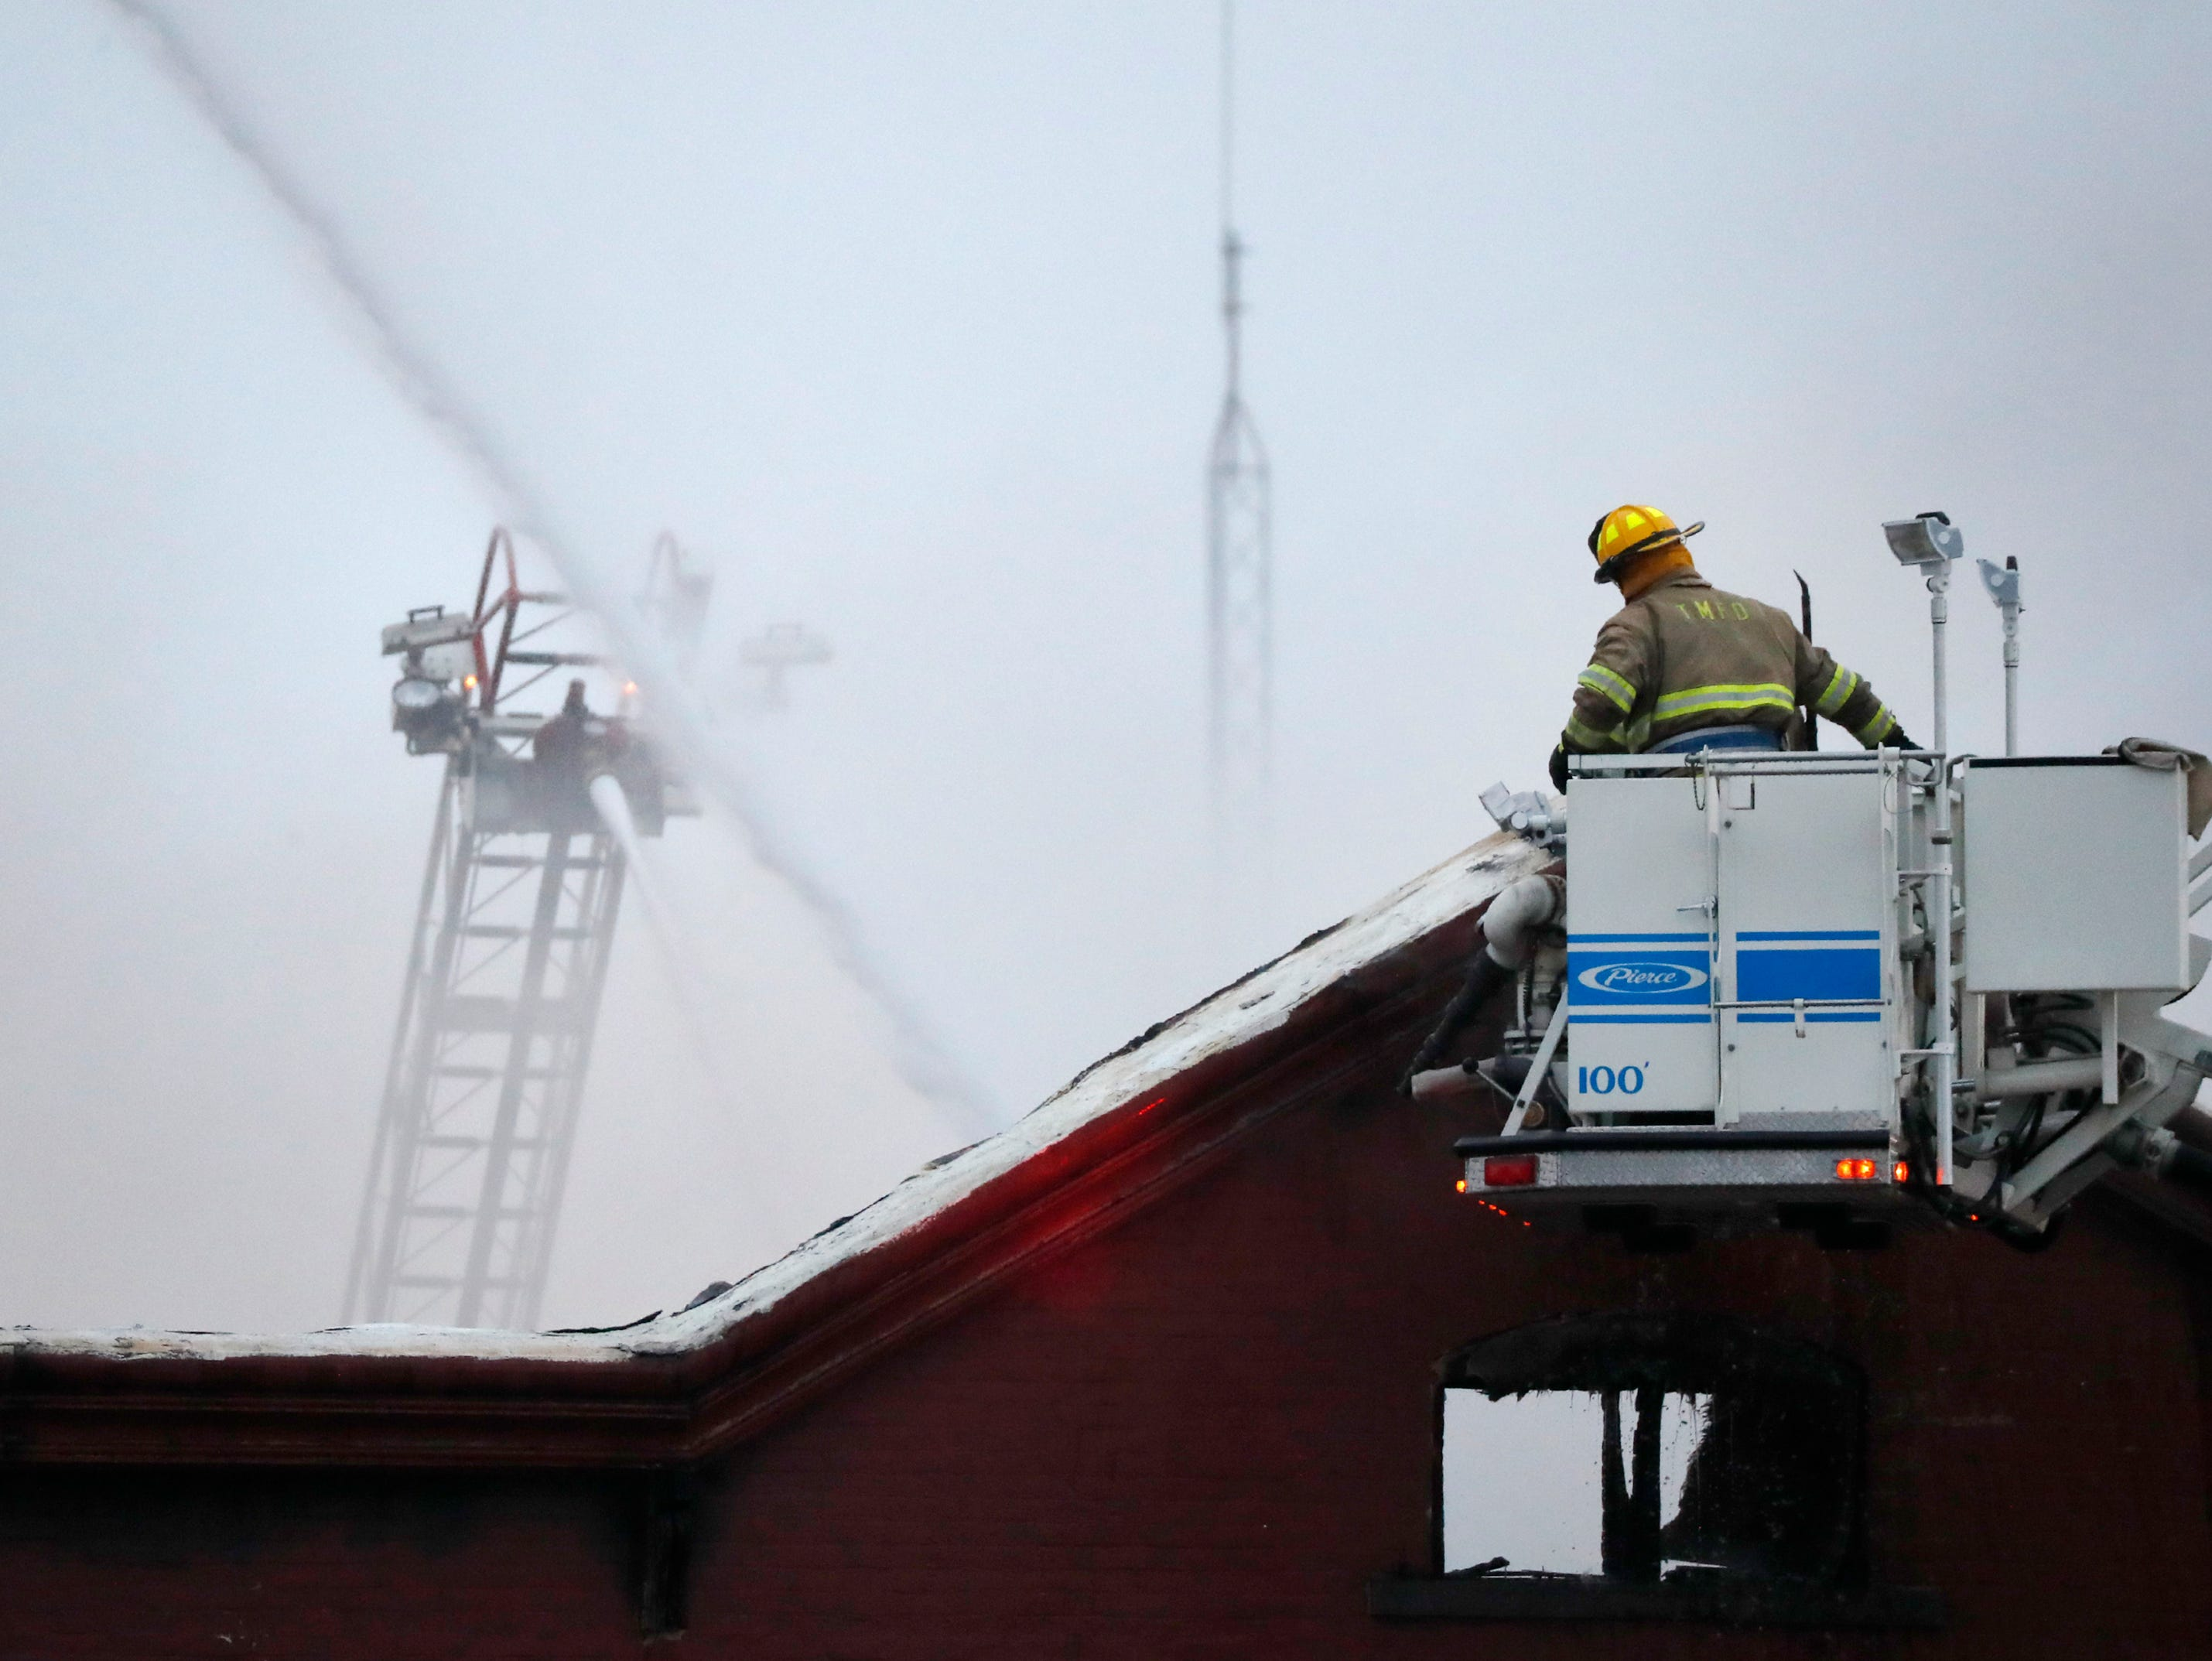 Firefighters work the scene of a structure fire in downtown Appleton on the corner of West Washington and North Appleton Streets Wednesday, March 13, 2019, in Appleton, Wis. Danny Damiani/USA TODAY NETWORK-Wisconsin